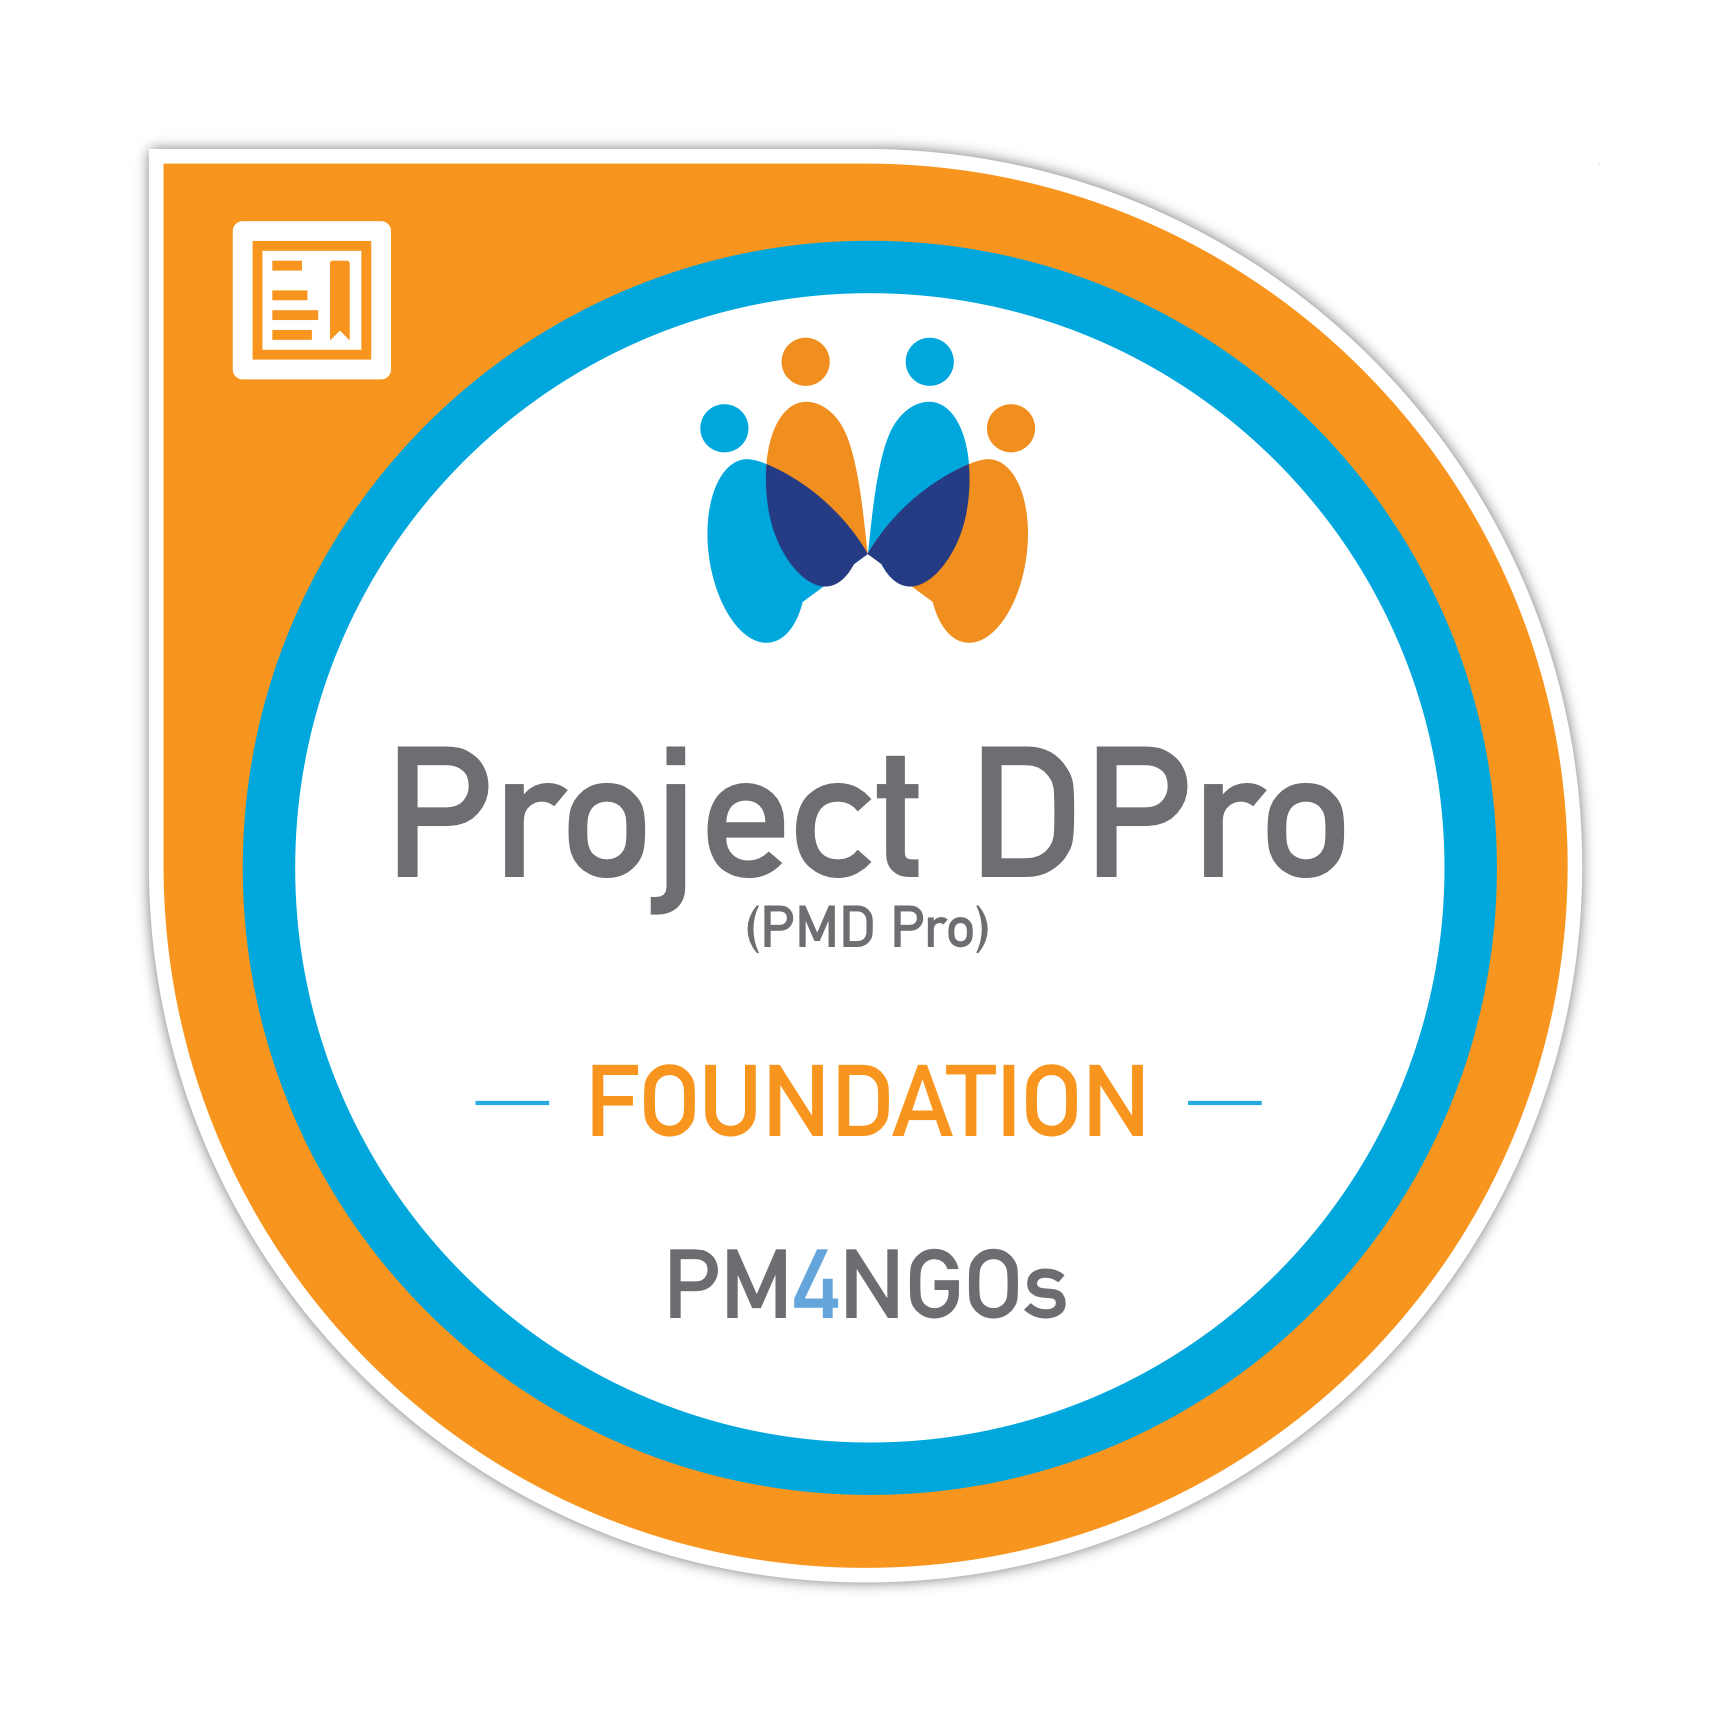 Project DPro Foundation